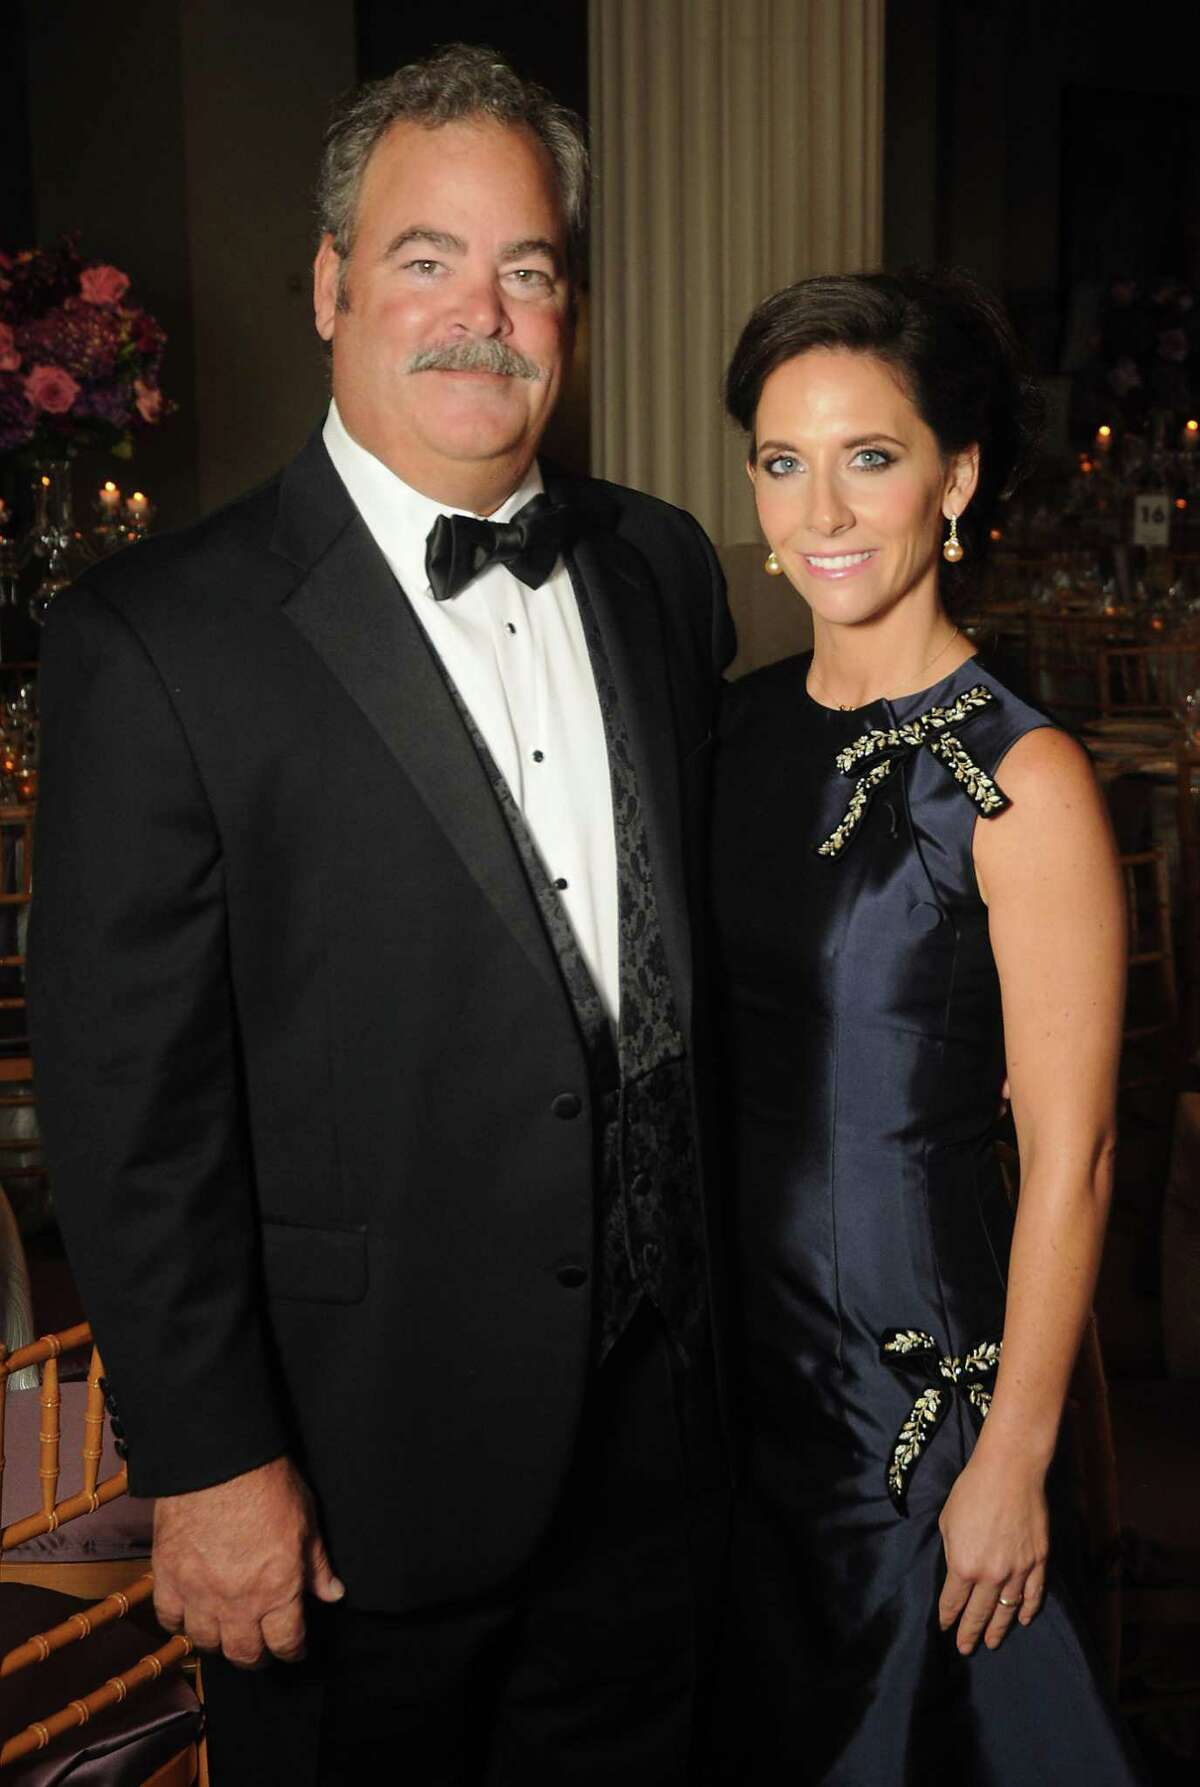 Chairs Hannah and Cal McNair to co-chair March of Dimes' 80th birthday celebration at Steak 48.